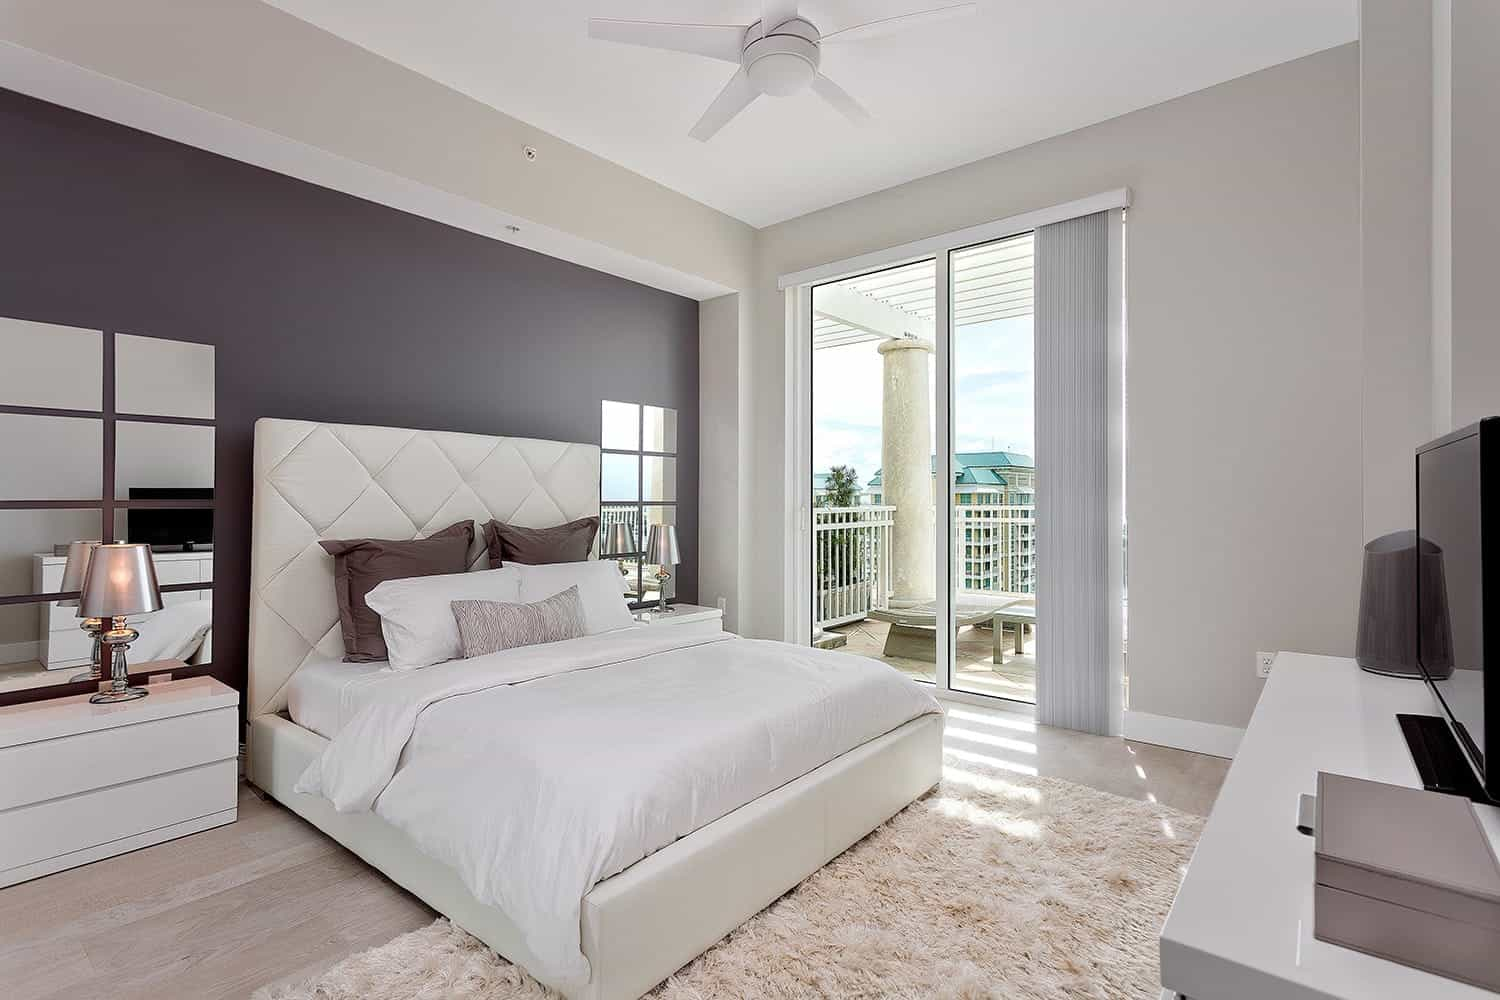 Bright Contemporary Bedroom Cheap Decoration With Purple Gray Accent Wall, Tufted White Headboard And Mirror Wall Paneling (View 11 of 16)